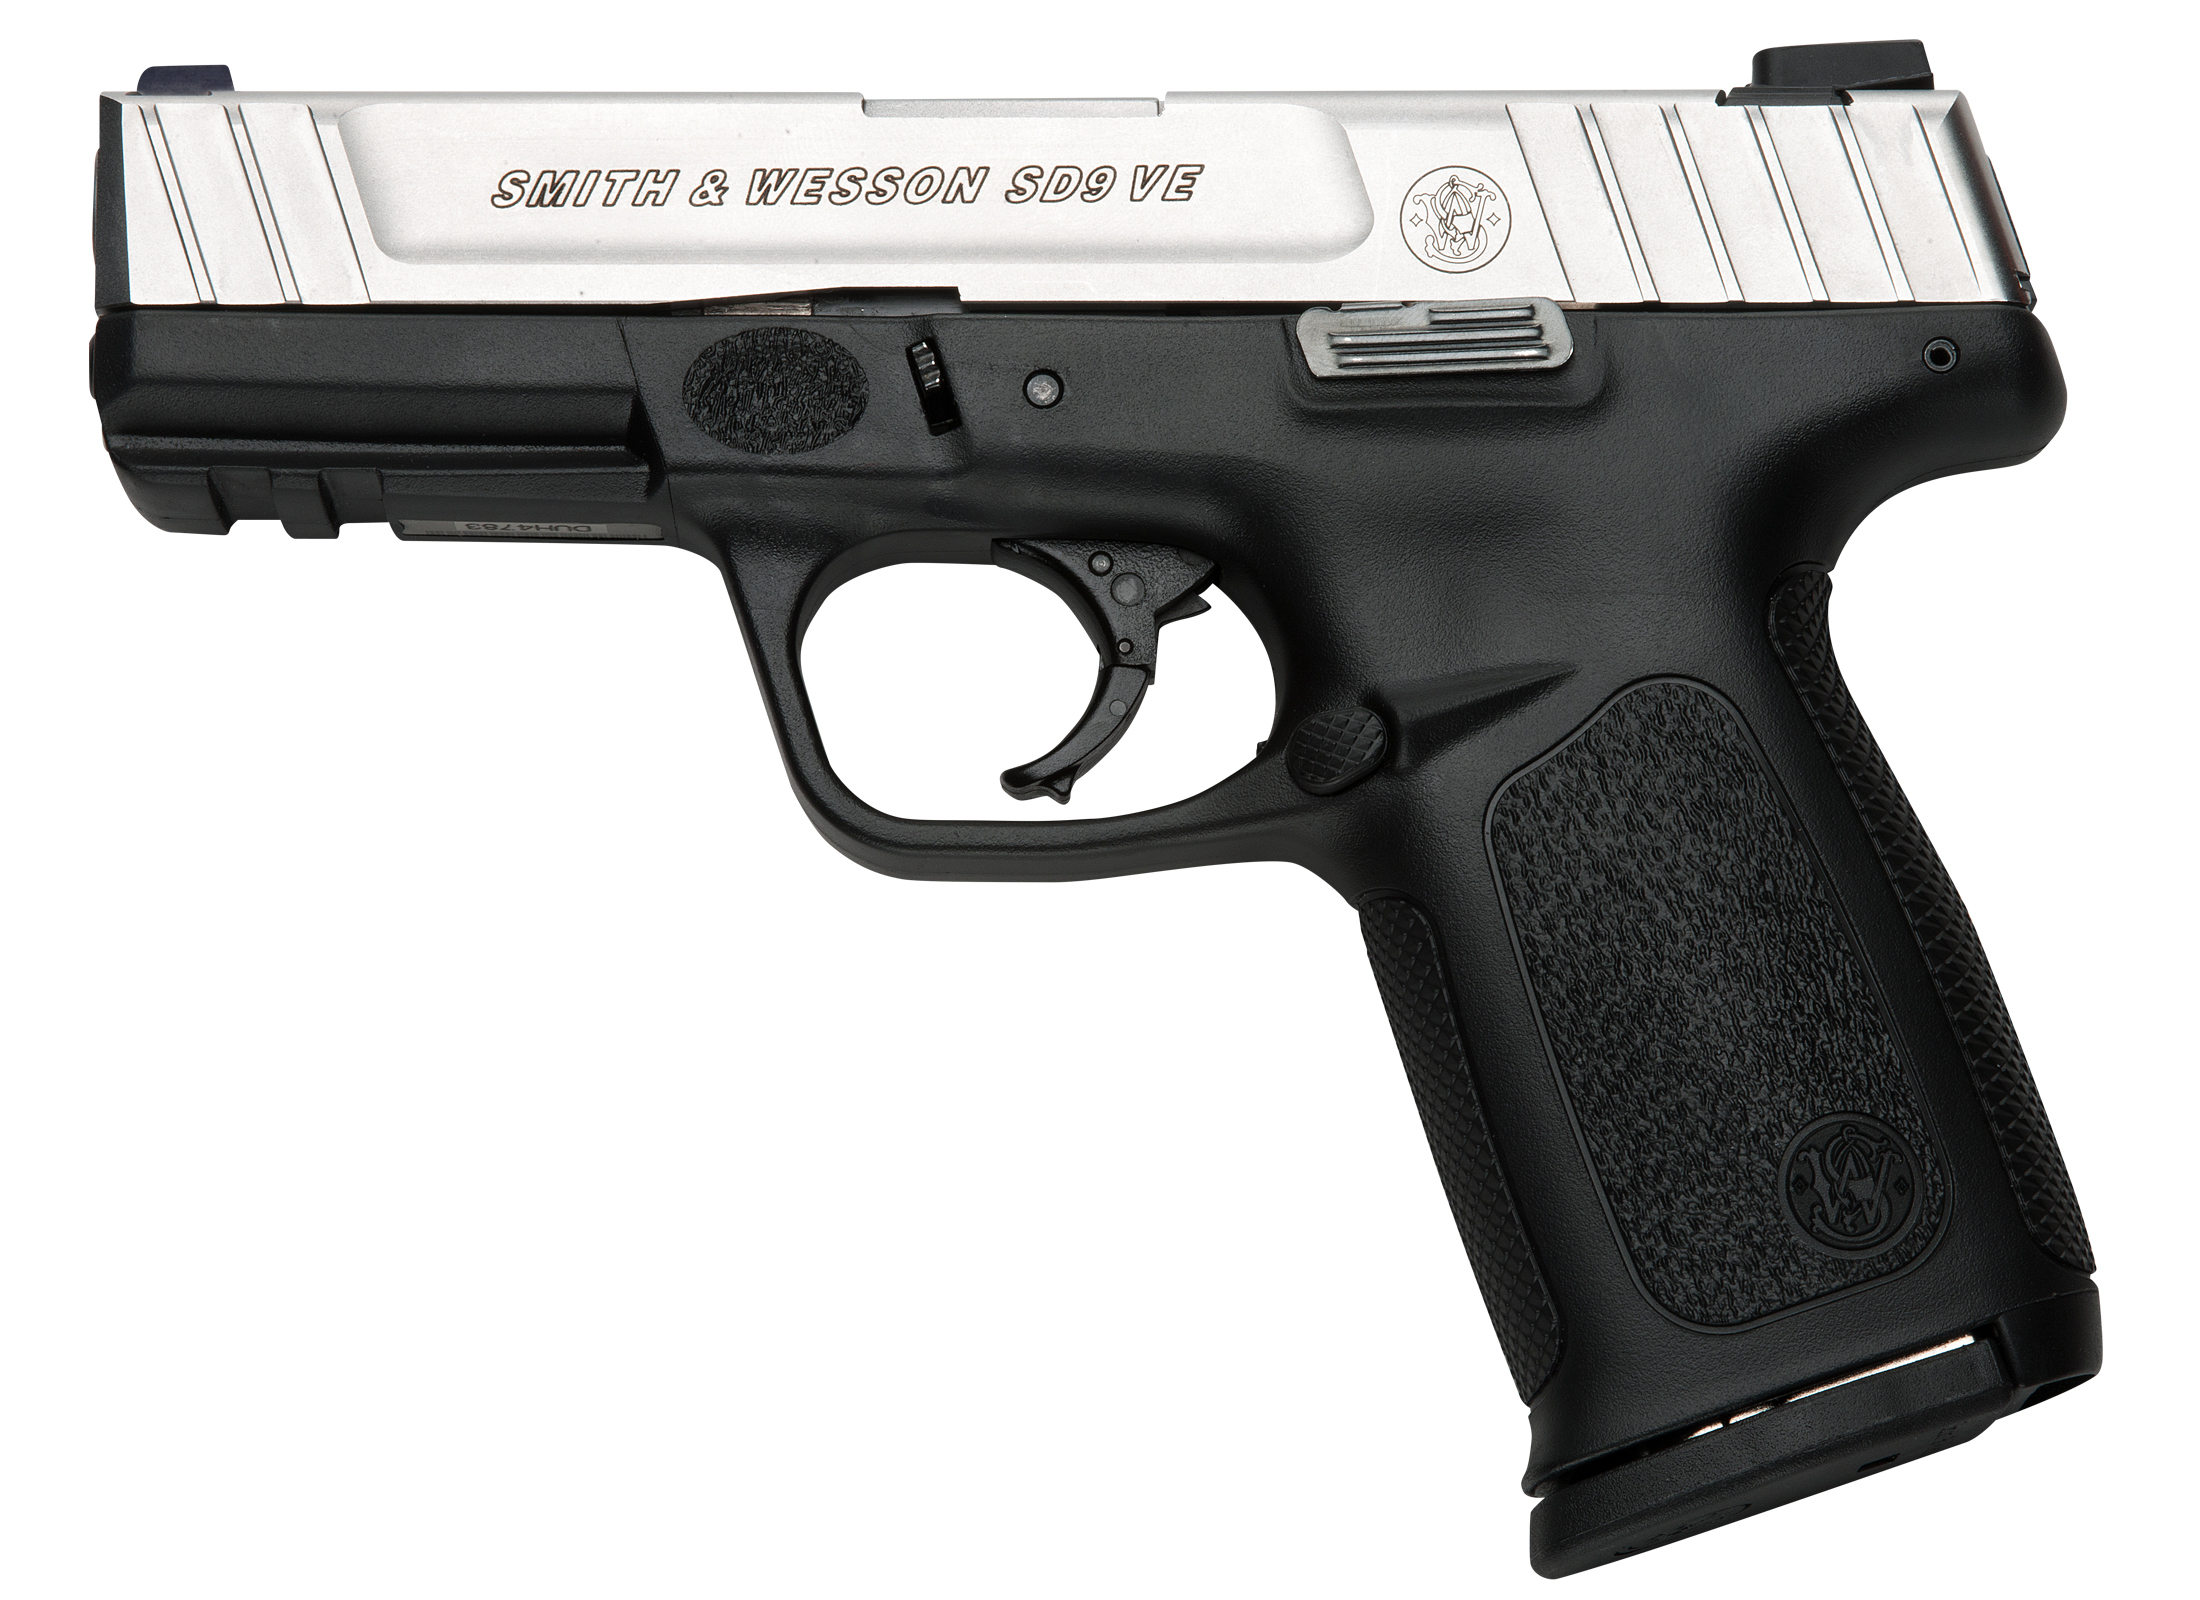 Smith and Wesson SD9VE 9mm